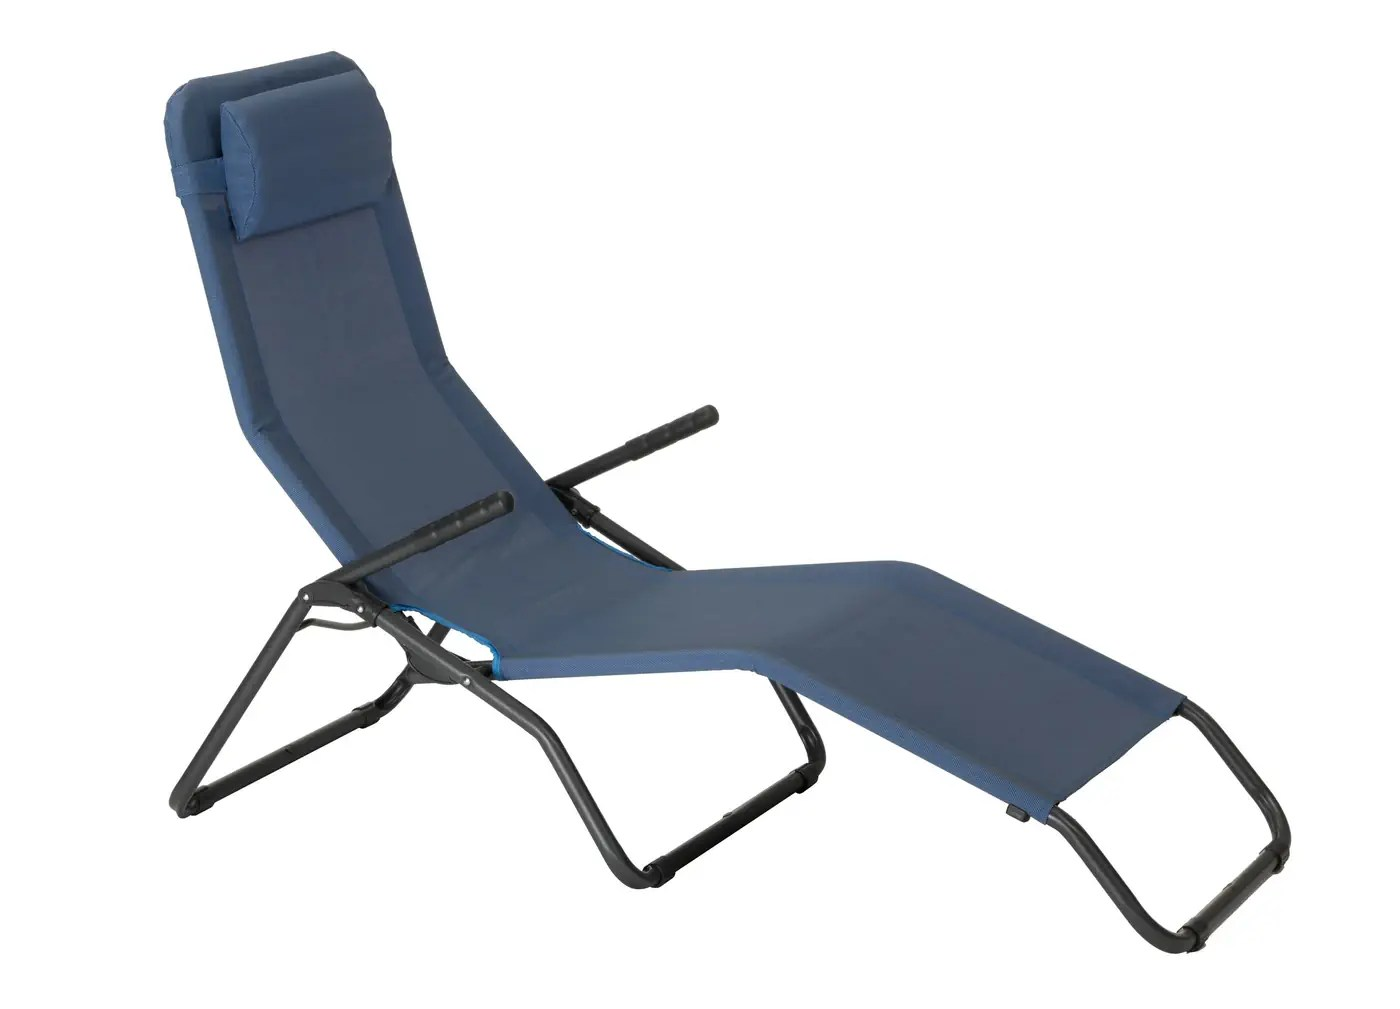 Chaise Longue Chaise Longue Inclinable